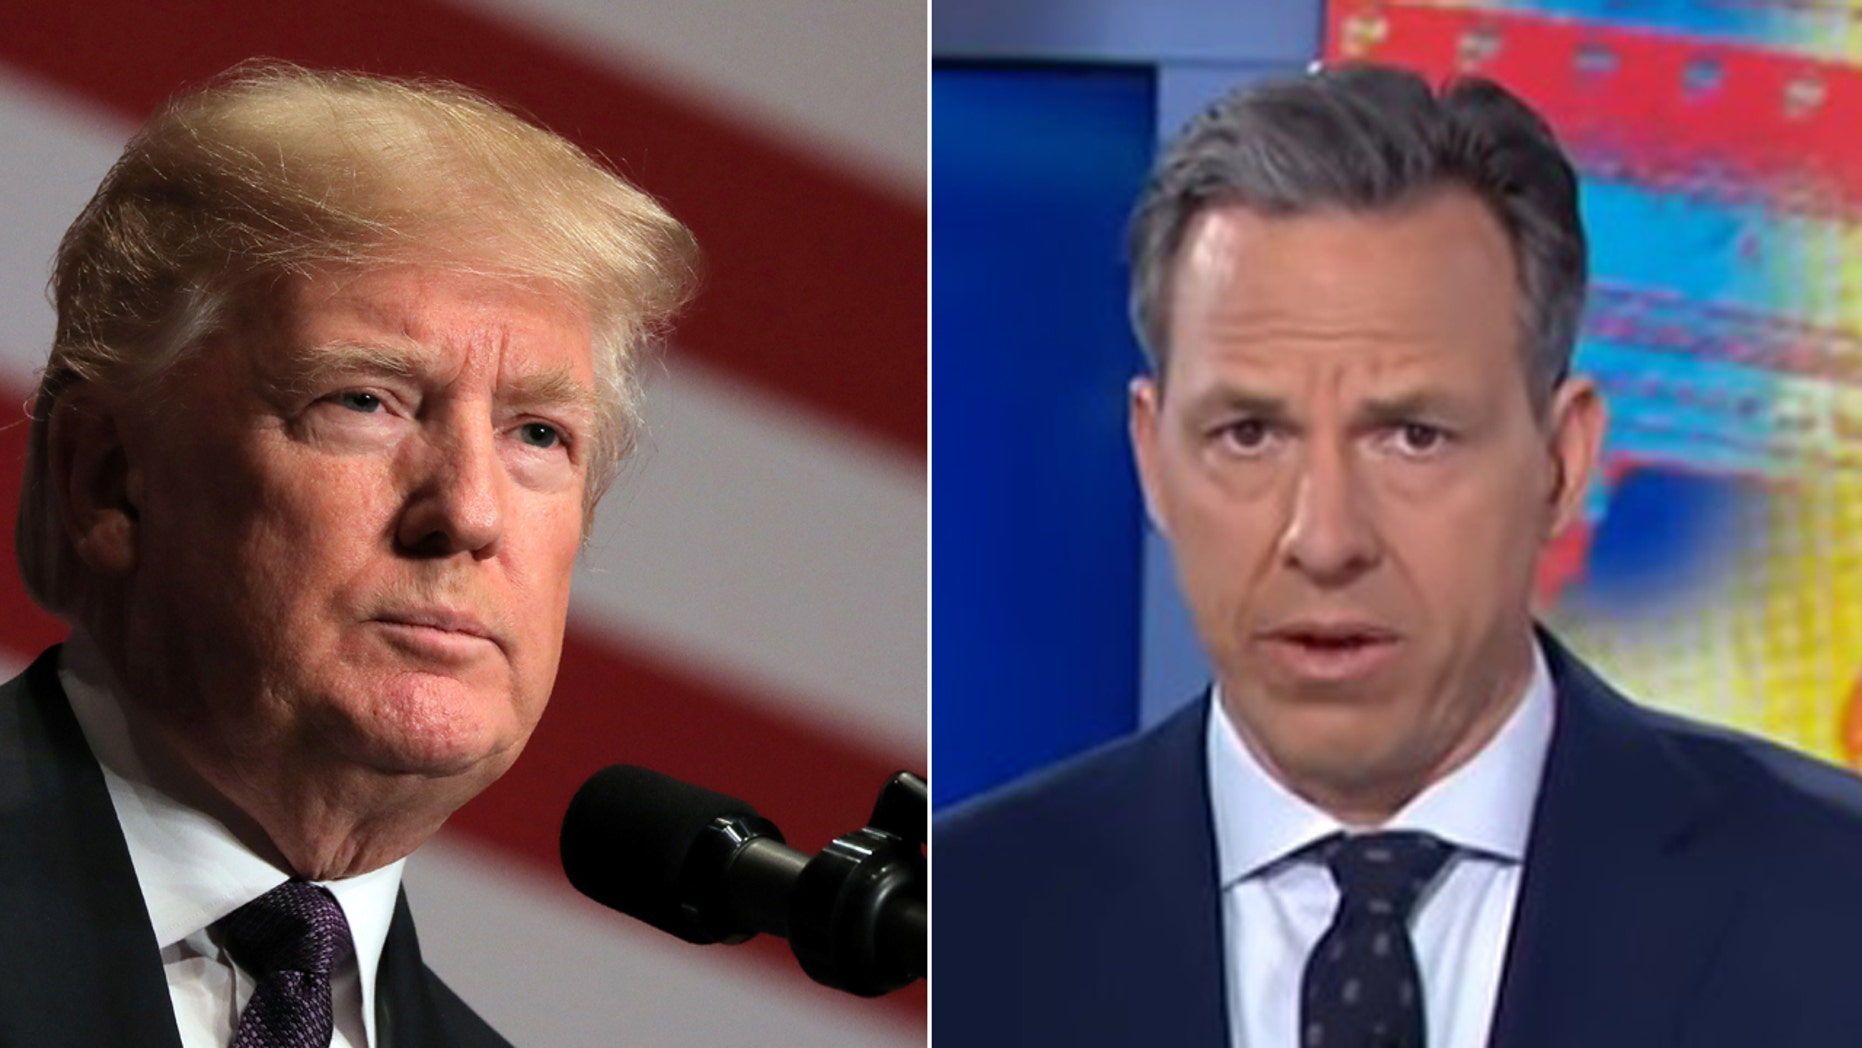 President Trump took a new shot at CNN anchor Jake Tapper on Sunday.